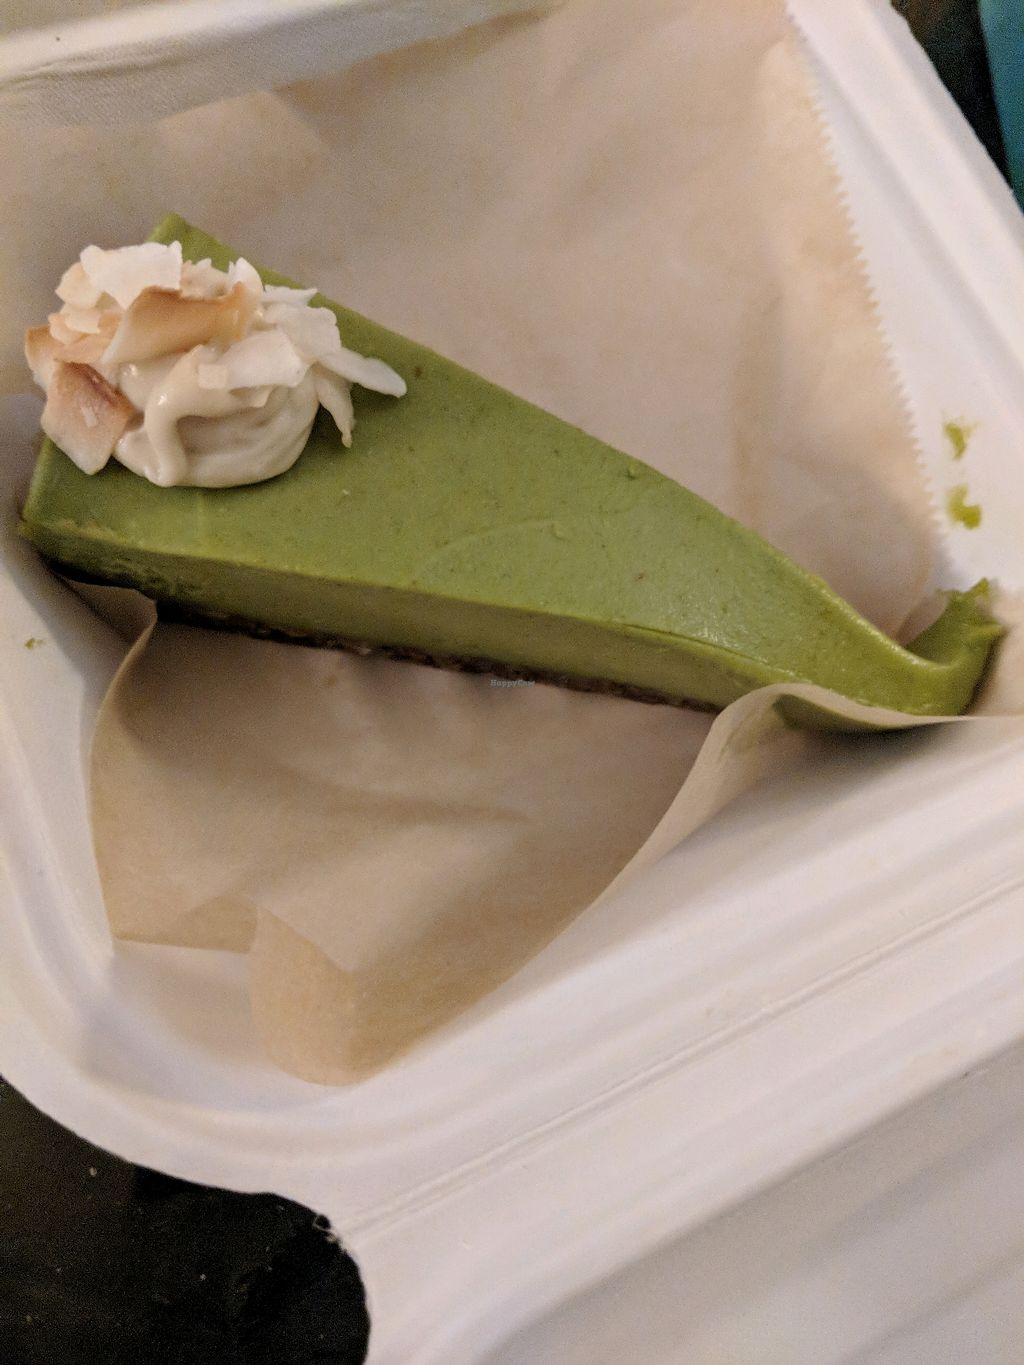 """Photo of Vgan Kitchen  by <a href=""""/members/profile/Shiru"""">Shiru</a> <br/>key lime cheesecake <br/> December 24, 2017  - <a href='/contact/abuse/image/101657/338573'>Report</a>"""